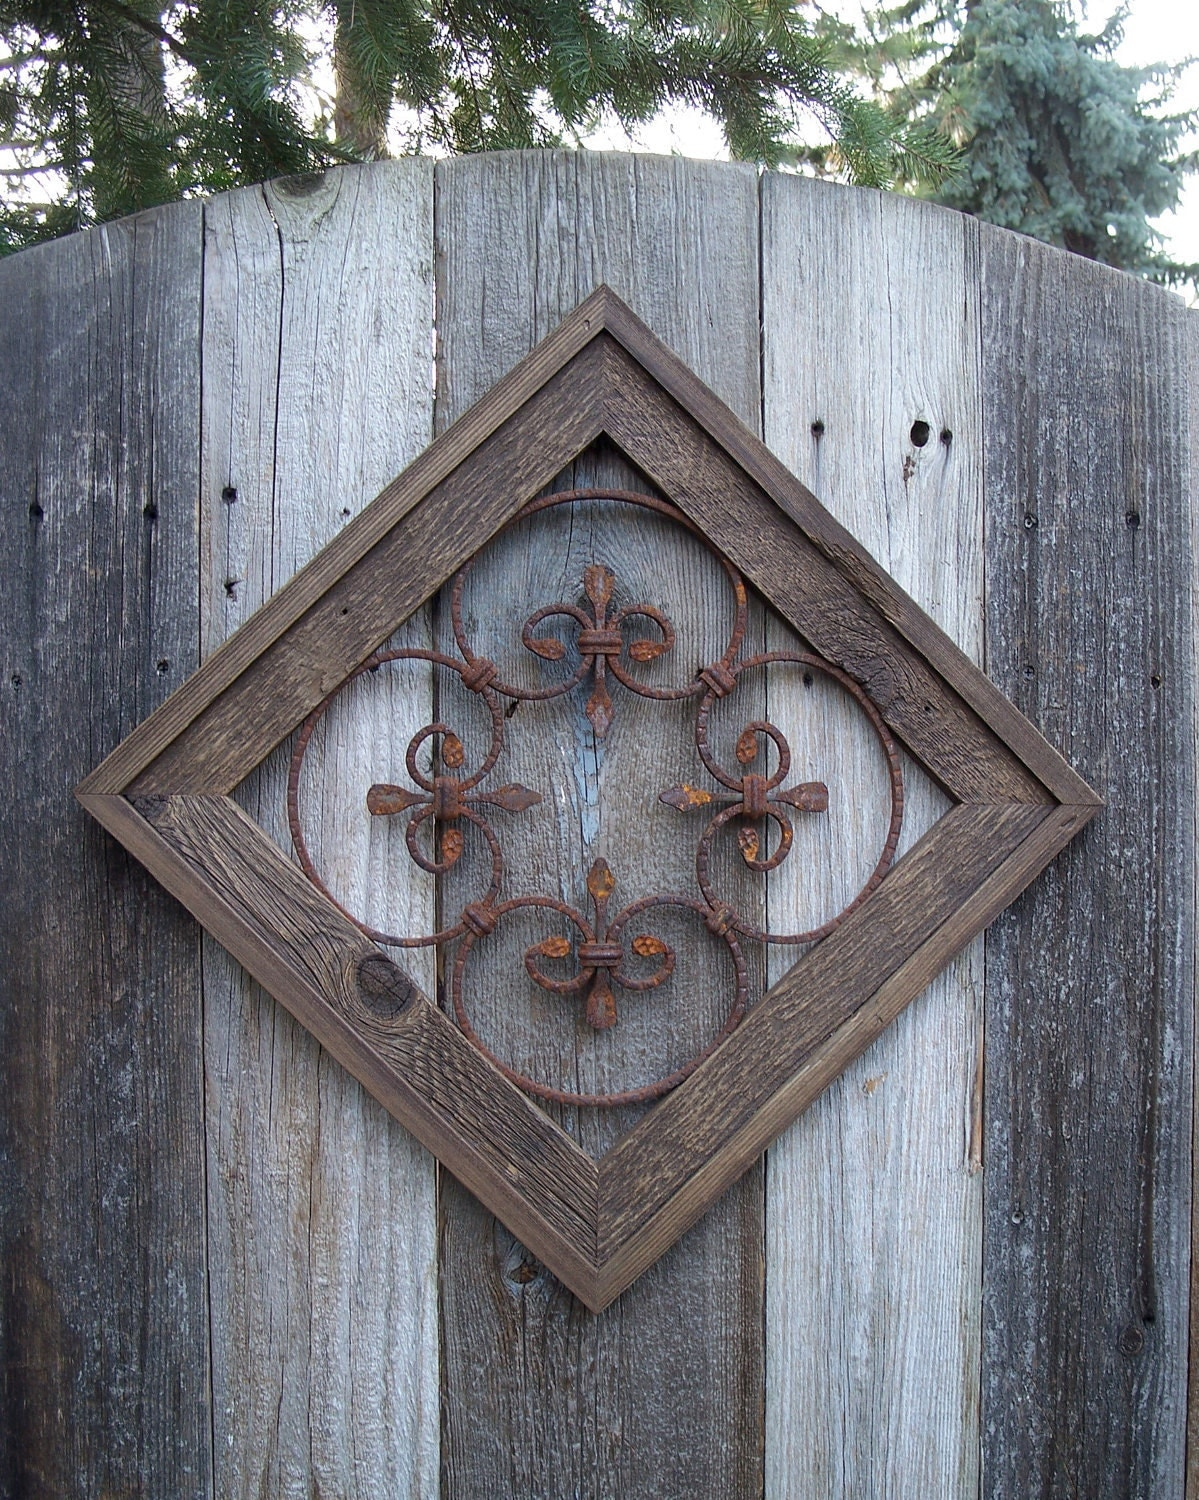 Country Chic Wall Decor Rustic Framed Steel Wall Decor For